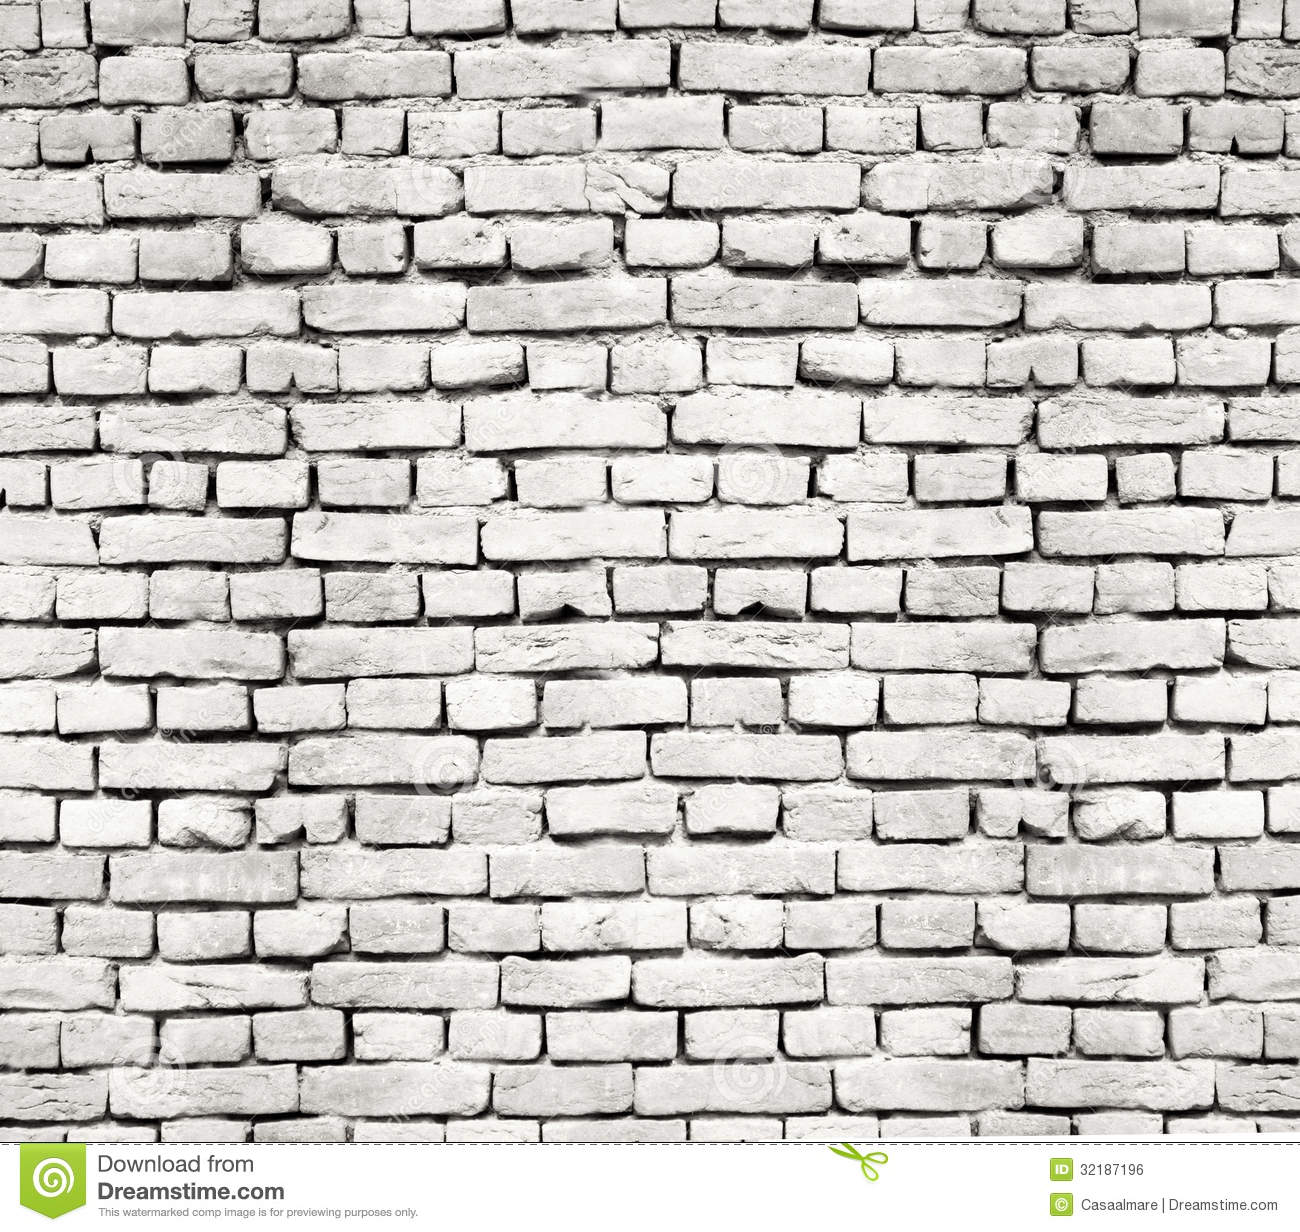 Hourwall Classicbrick Vintagewhite: Old Brick Wall Stock Photo. Image Of Pattern, Retro